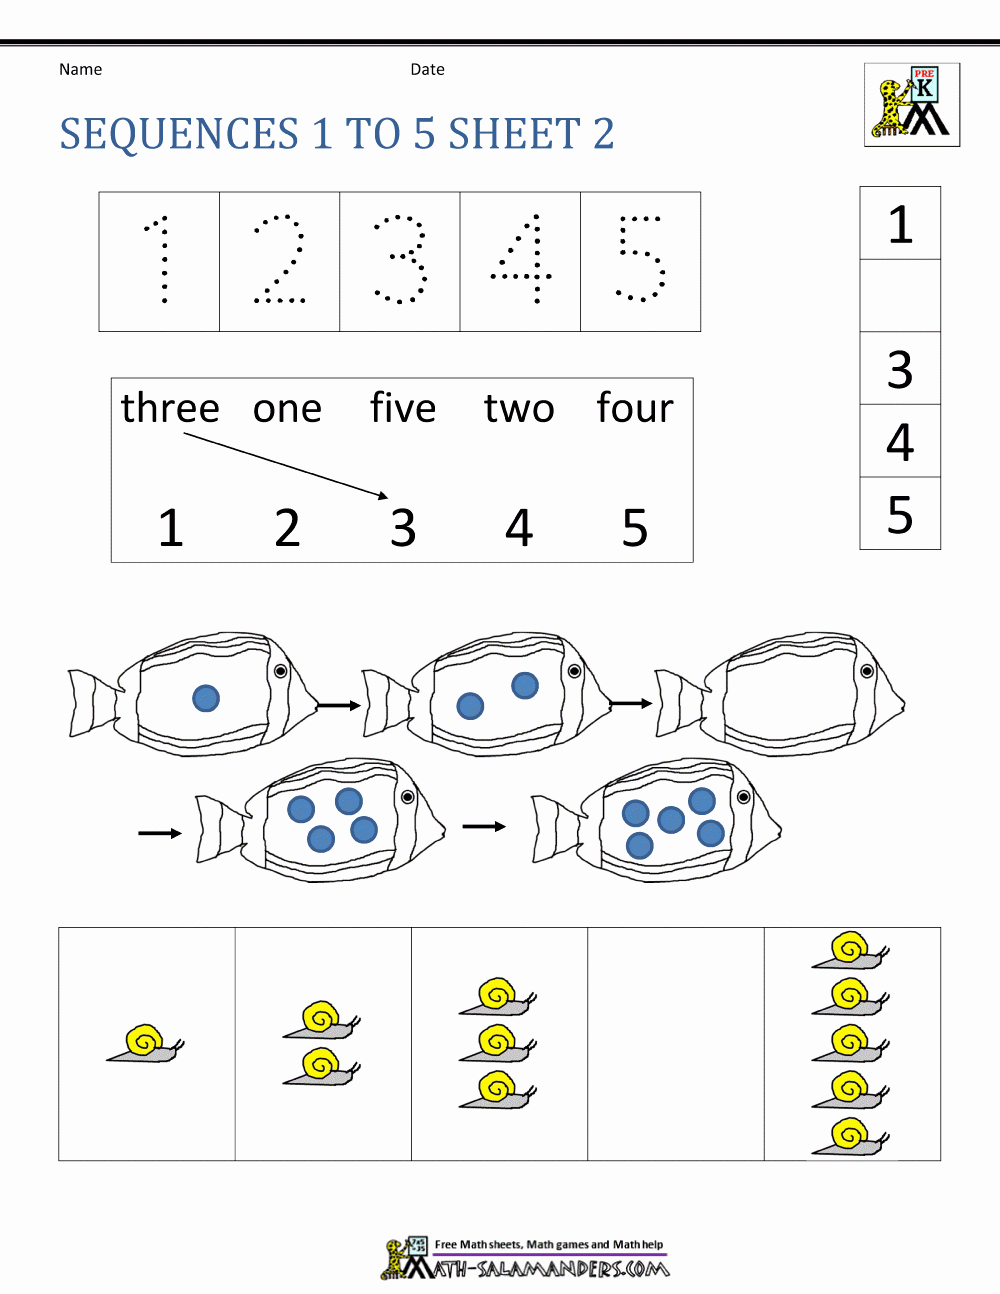 2nd Grade Sequencing Worksheets Inspirational Free Printable Sequencing Worksheets 2nd Grade